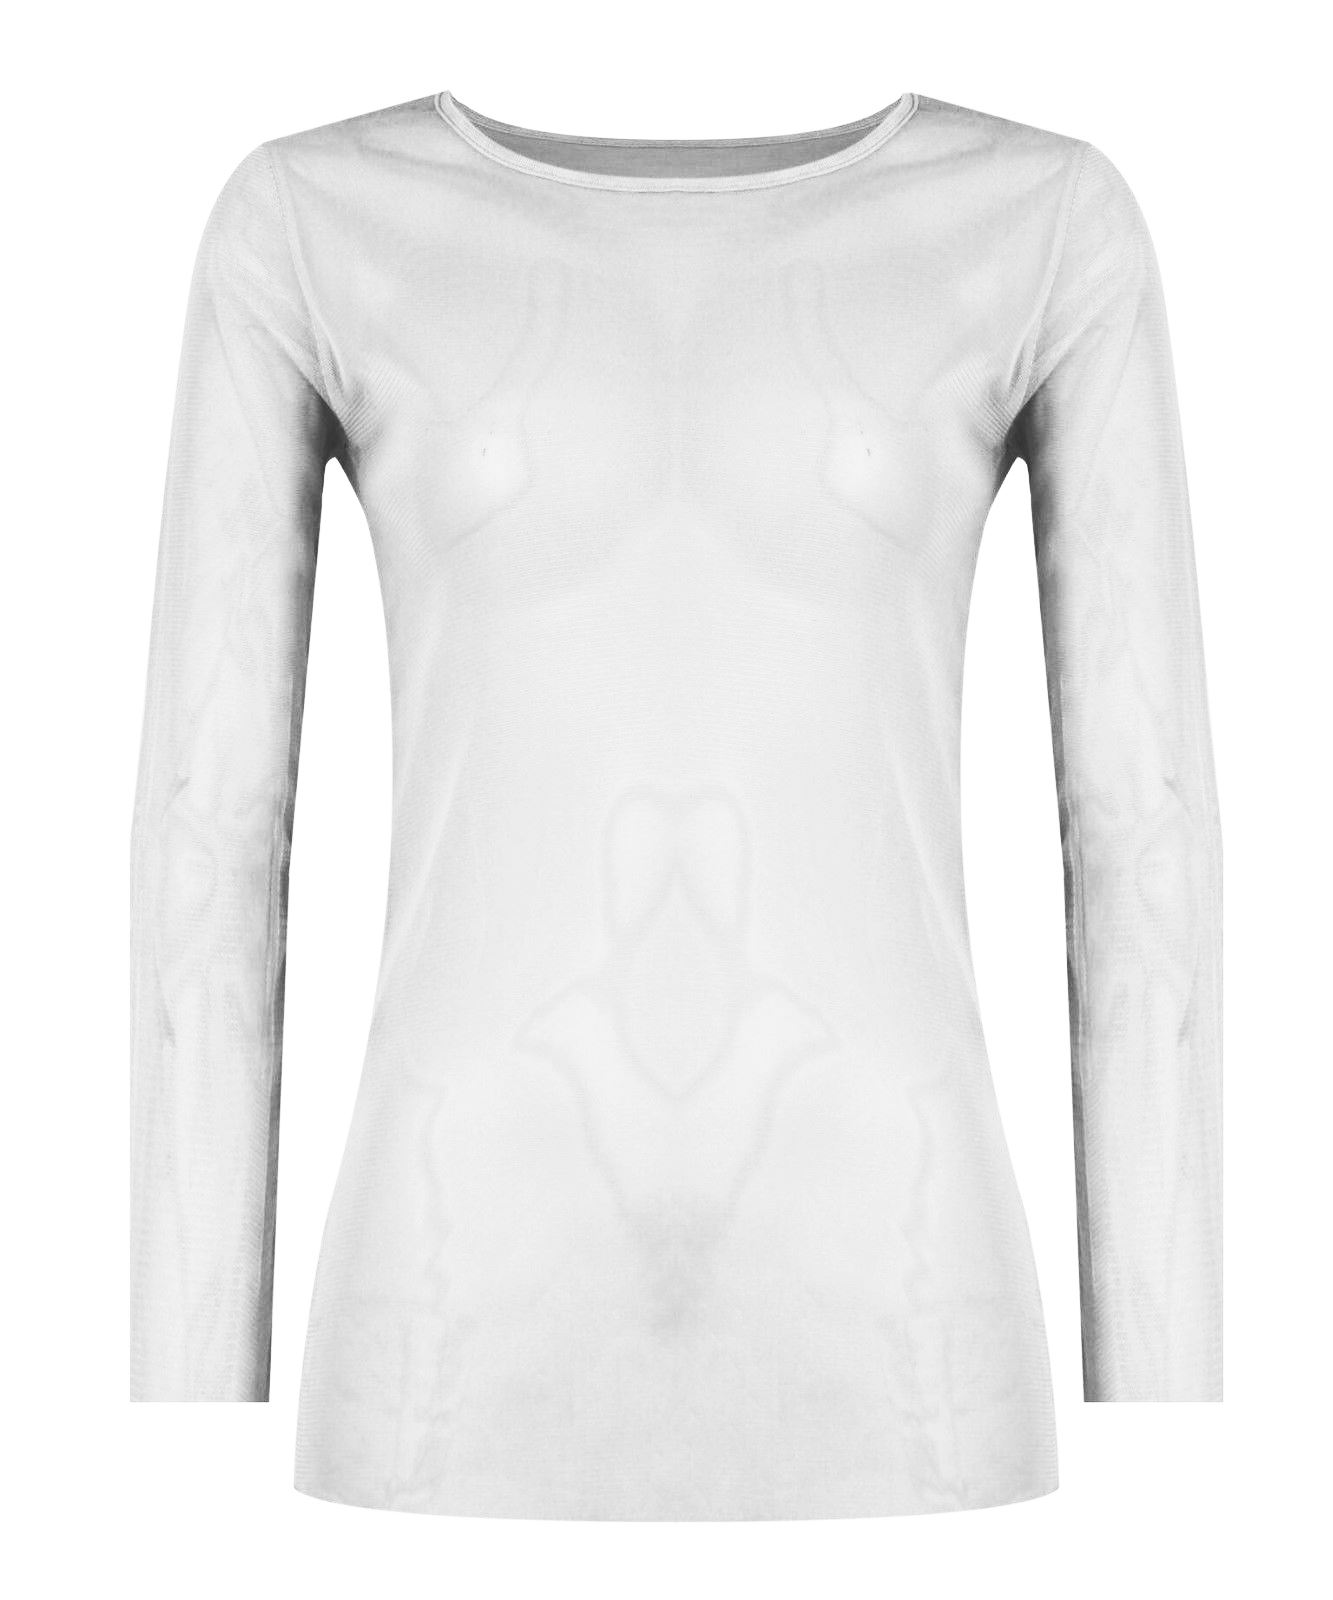 0d7f352a3ff637 New Womens Ladies Long Sleeve Plain Sheer Mesh See Through T Shirt Stretchy  Top